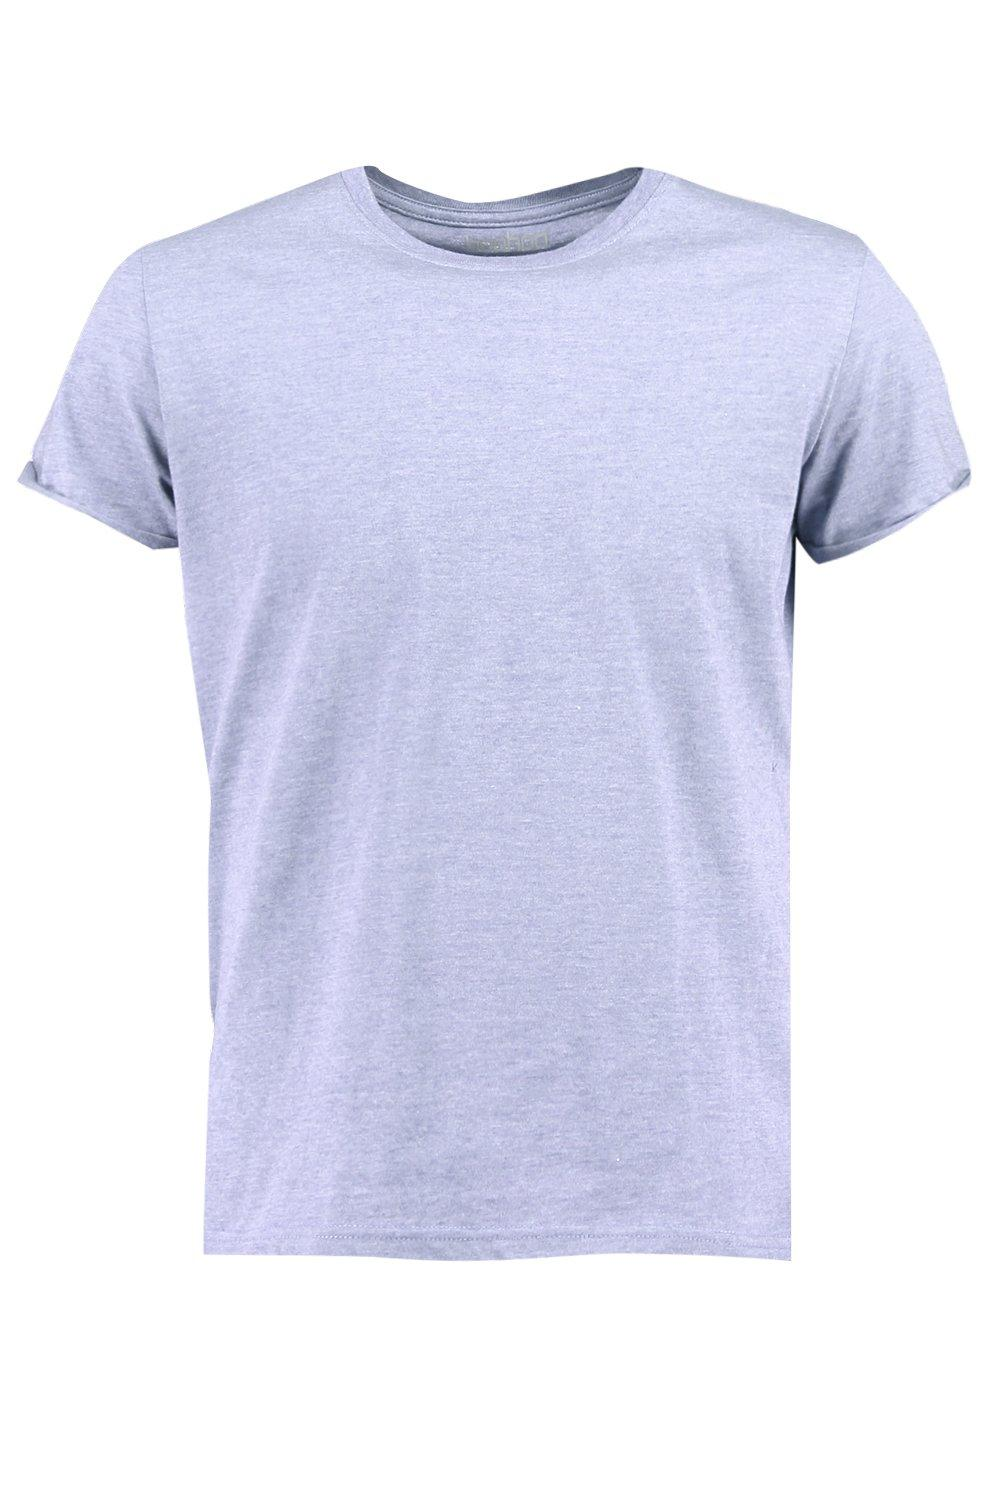 boohooMAN denim Crew Neck T-Shirt with Rolled Sleeves